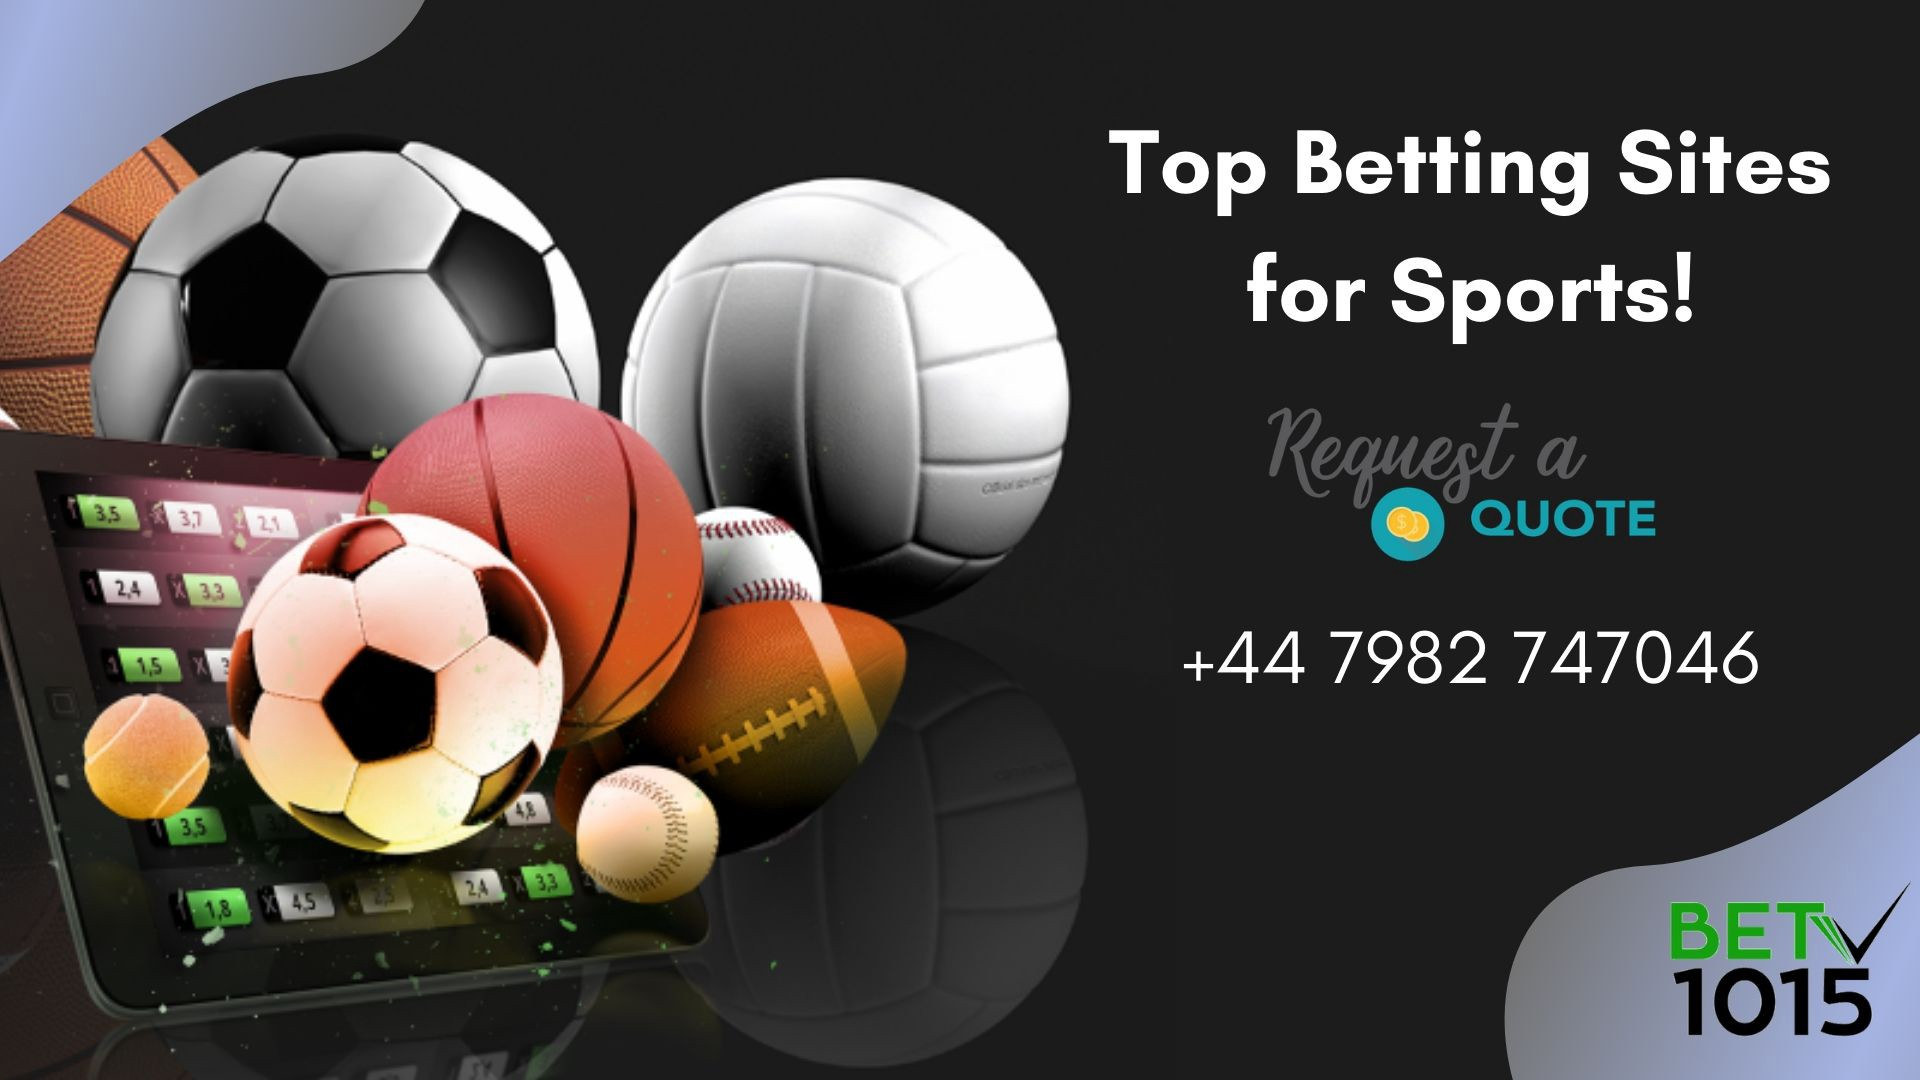 5 top online betting sites top soccer betting sites in nigeria coat